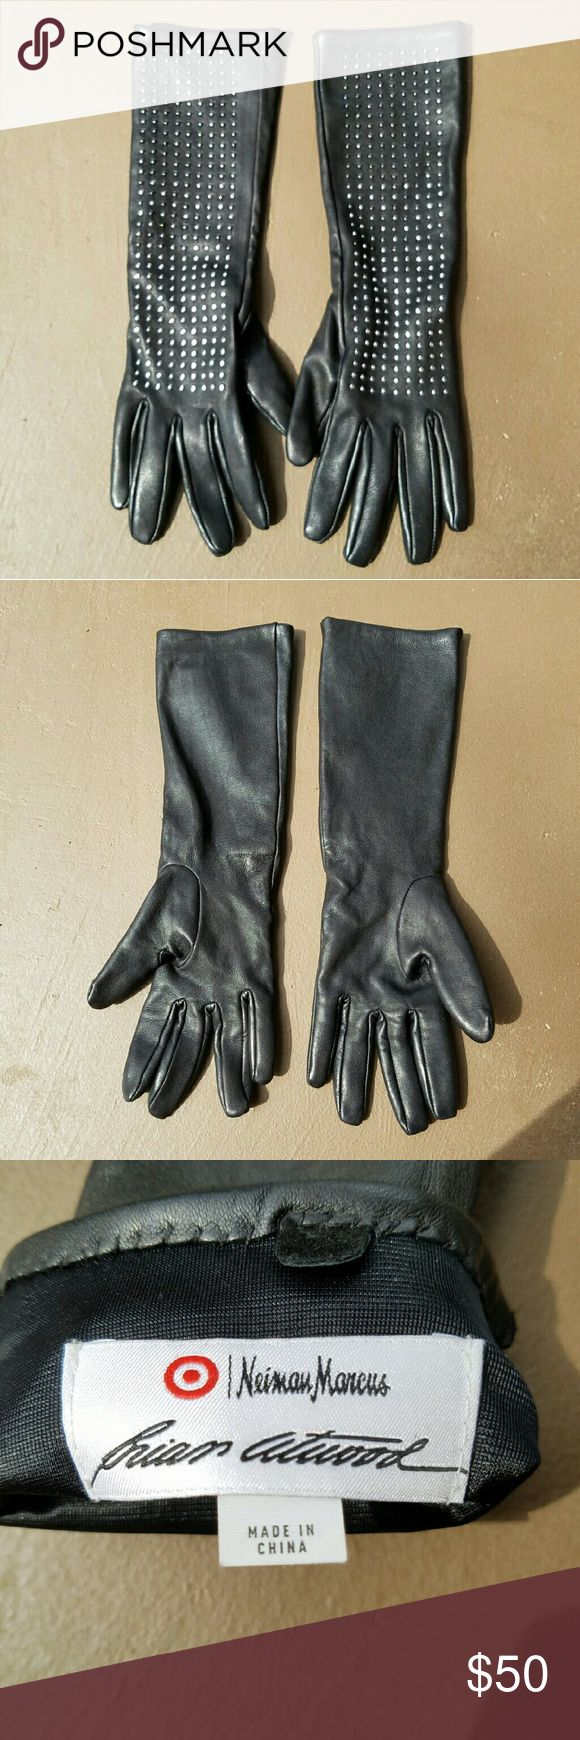 Studded Leather Gloves Elbow length Brian Atwood for Neiman Marcus / Target Slim Gloves. Silver Studded. Fits true to size. 100% sheep leather. Fully lined. Excellent condition. Neiman Marcus Accessories Gloves & Mittens